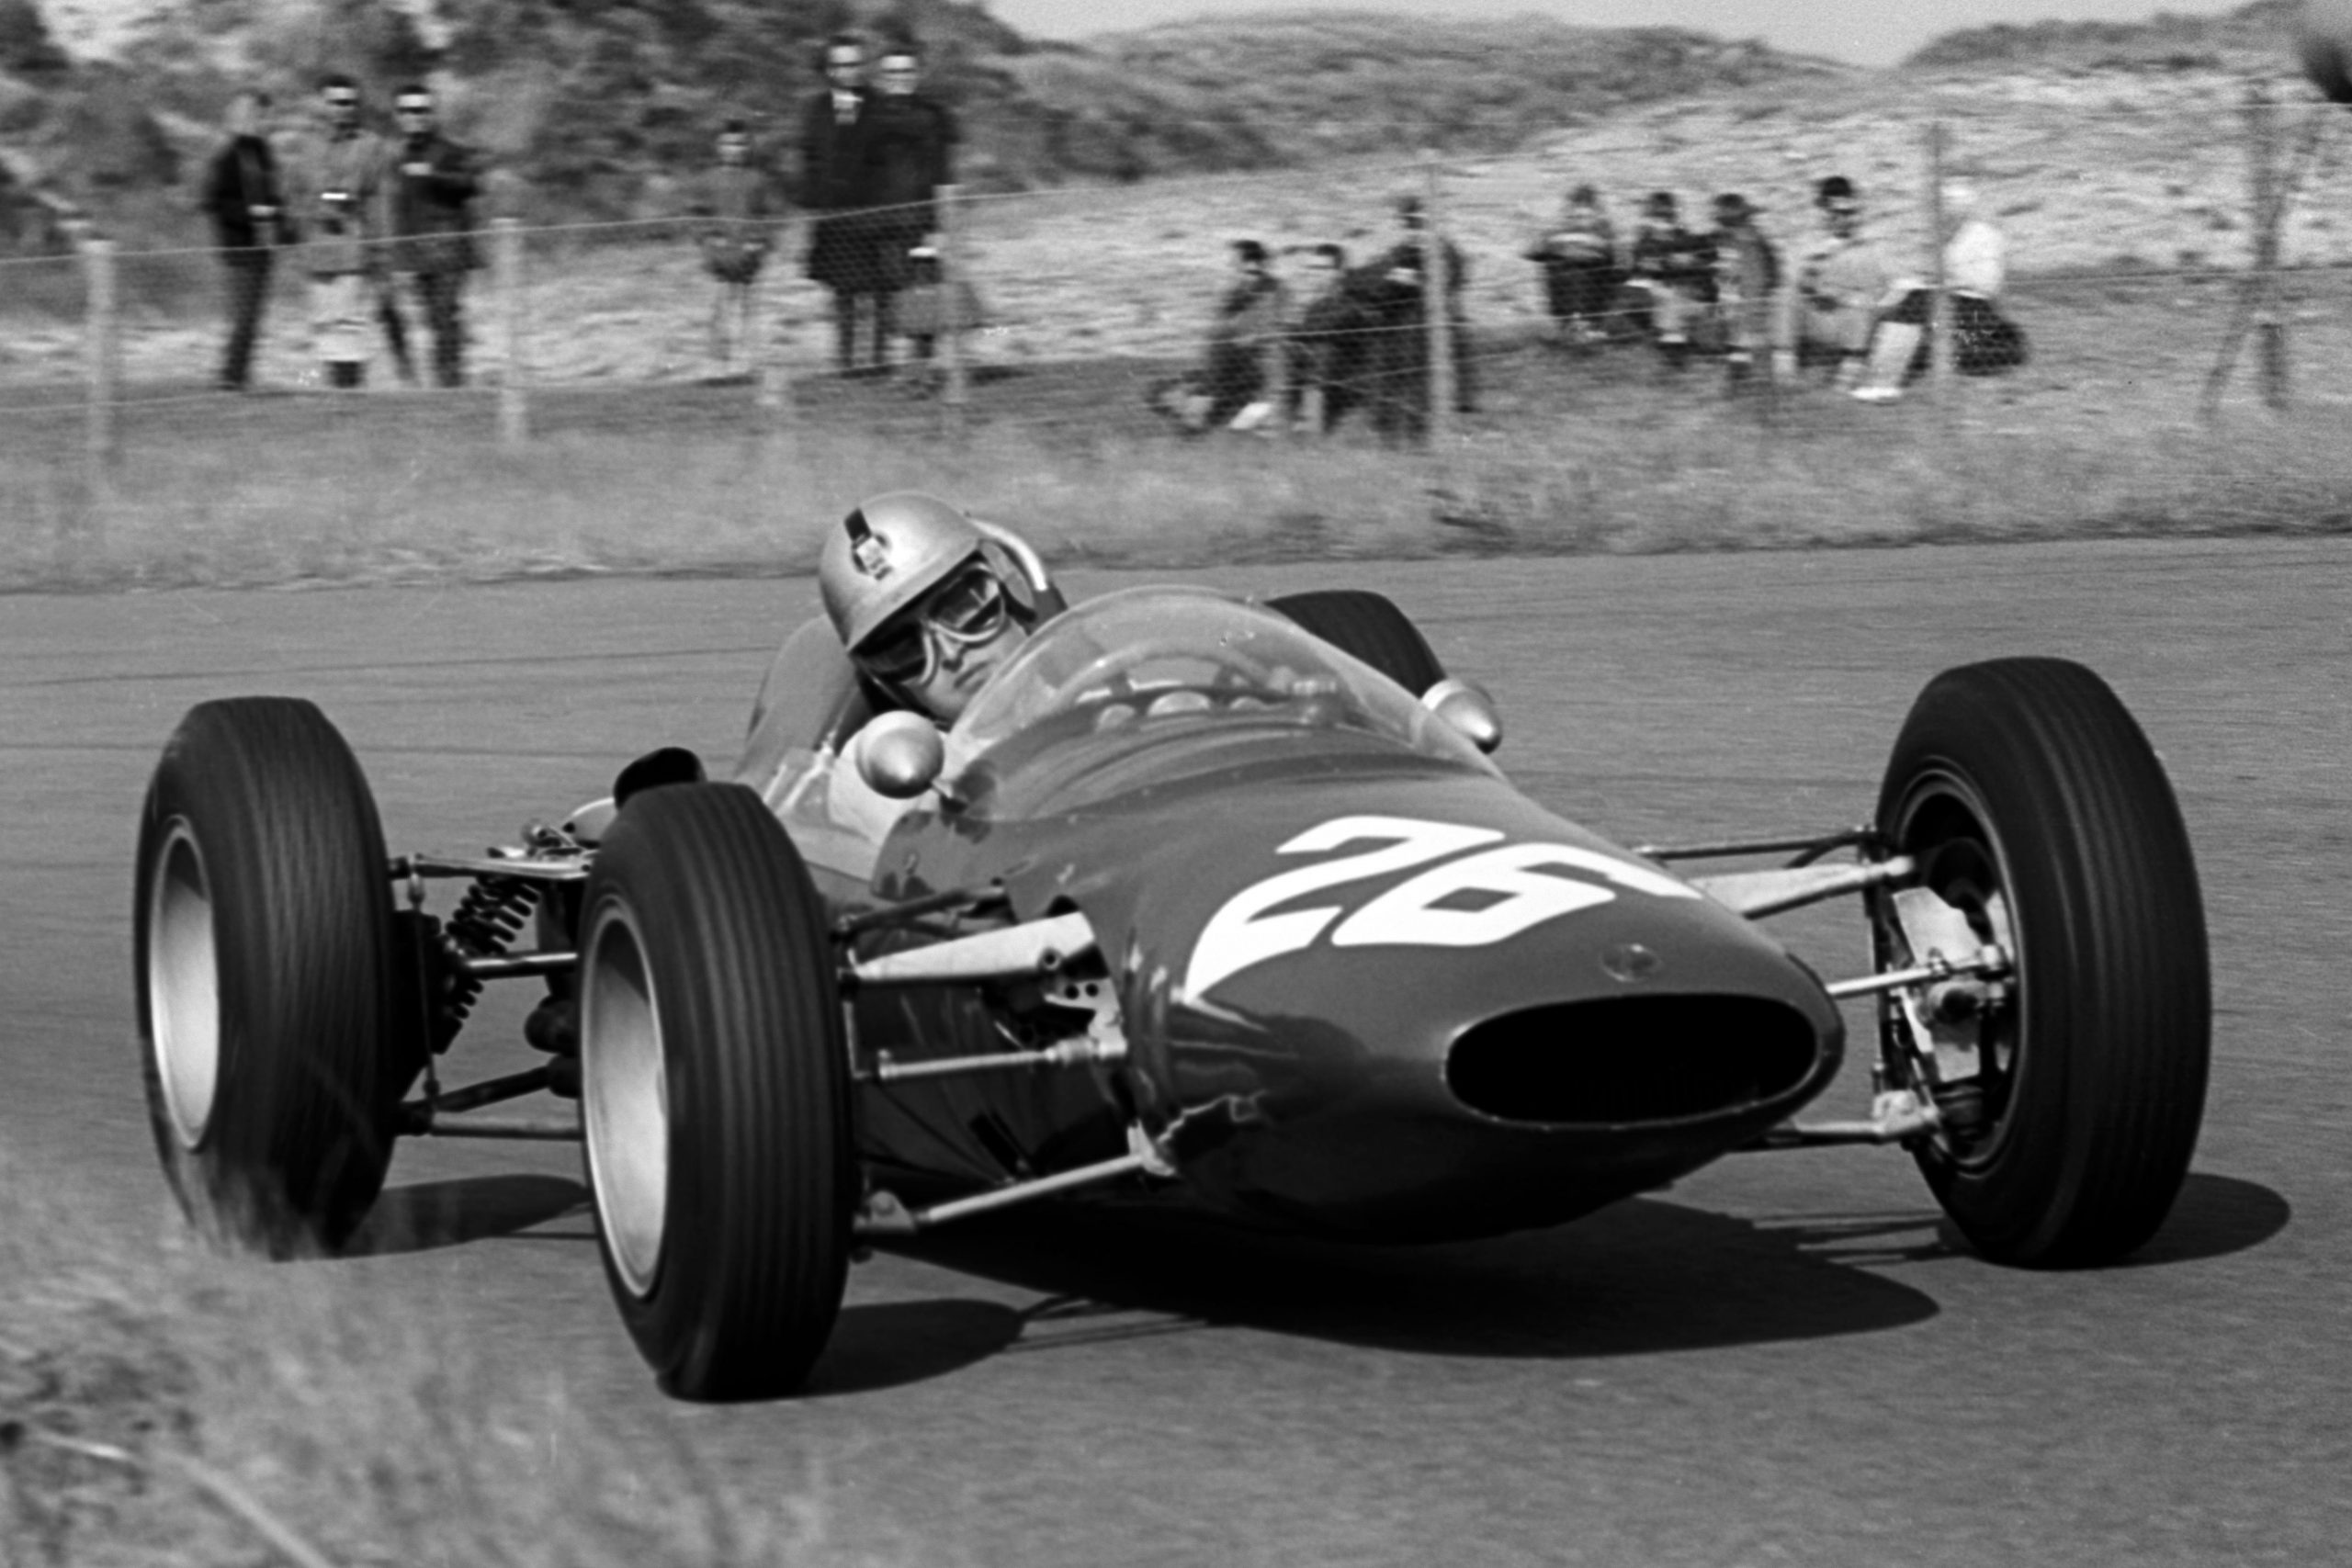 Giancarlo Baghetti retired the heavily revised ATS 100 after 17 laps with ignition failure.